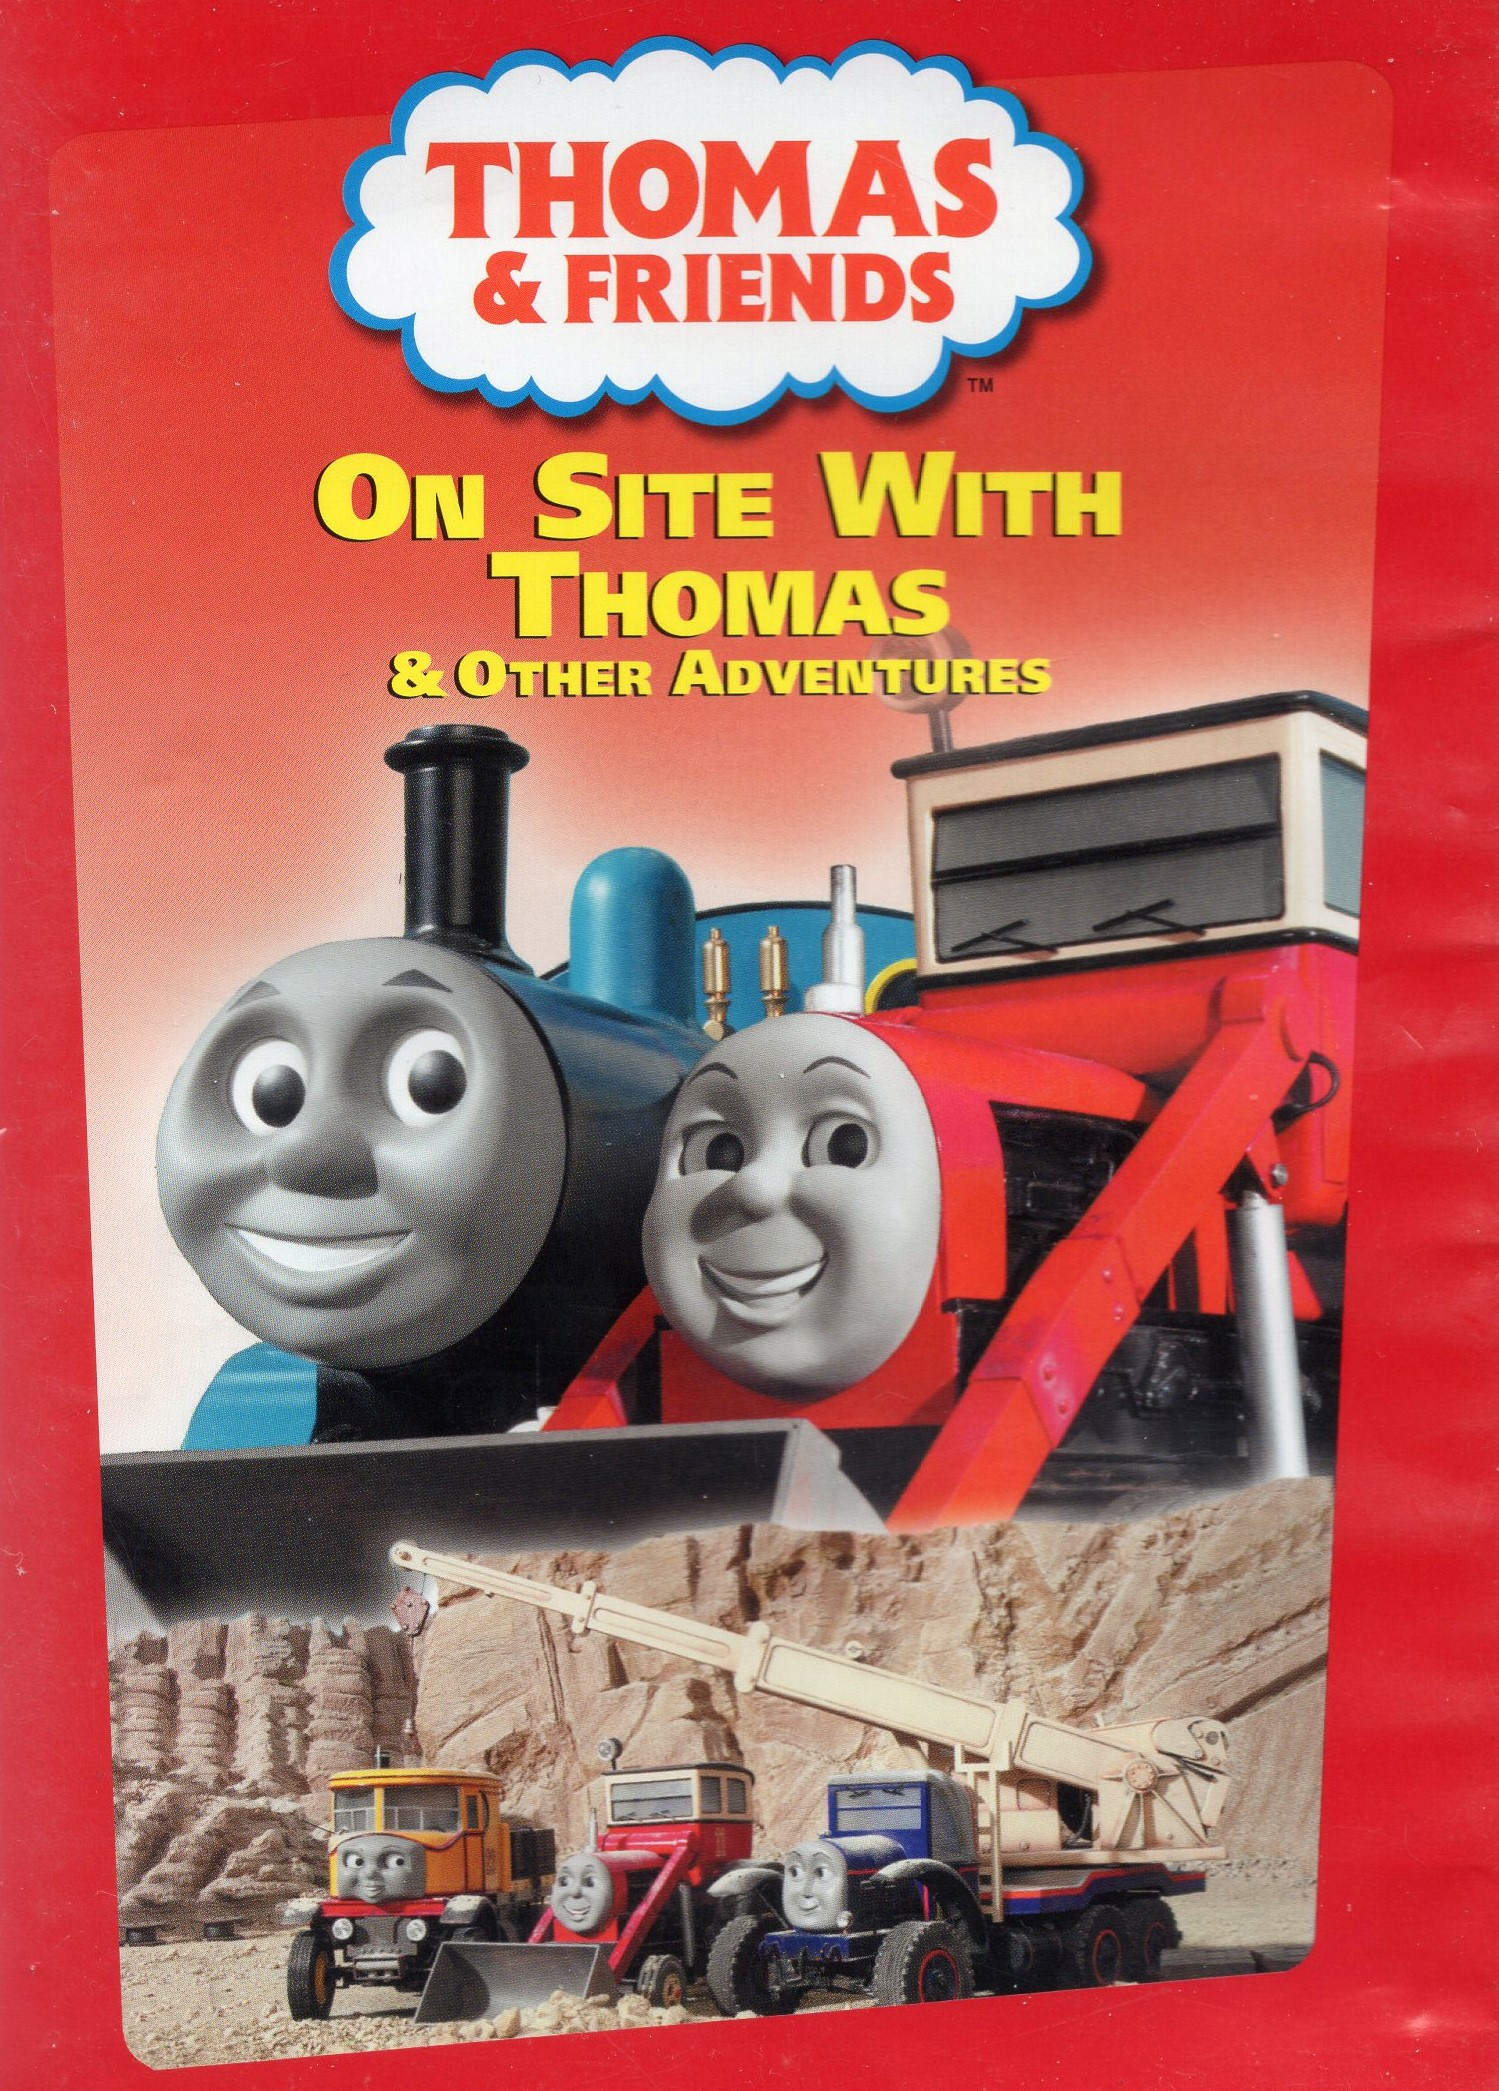 On Site with Thomas and Other Adventures